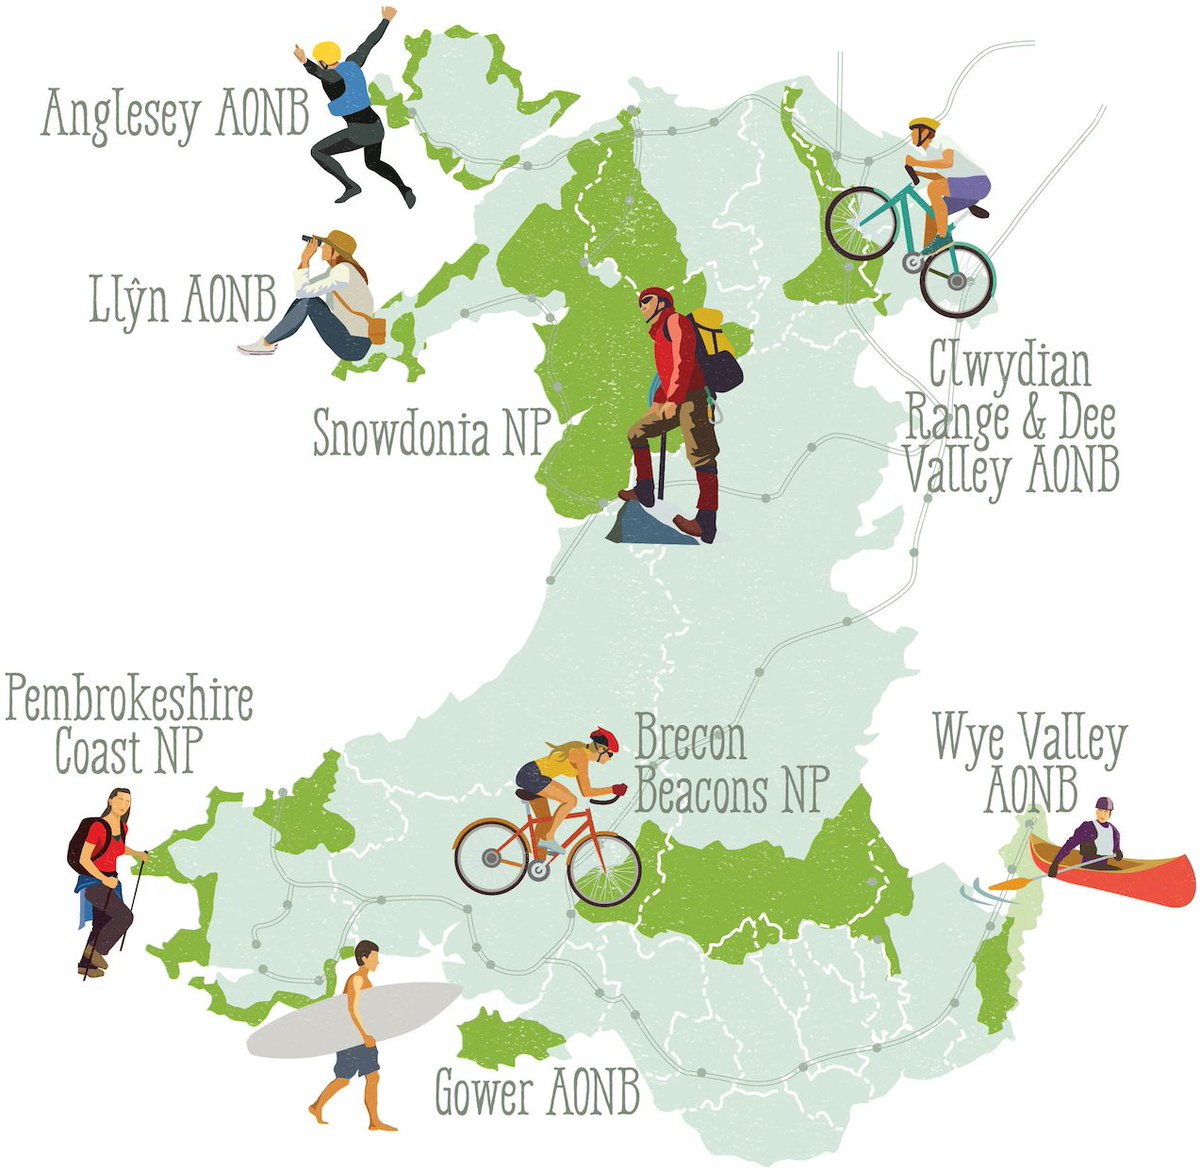 New! Greentraveller's Guide to the 8 Protected Landscapes of #Wales: https://t.co/AQWYR4x3HY https://t.co/rkXLAKMNK1